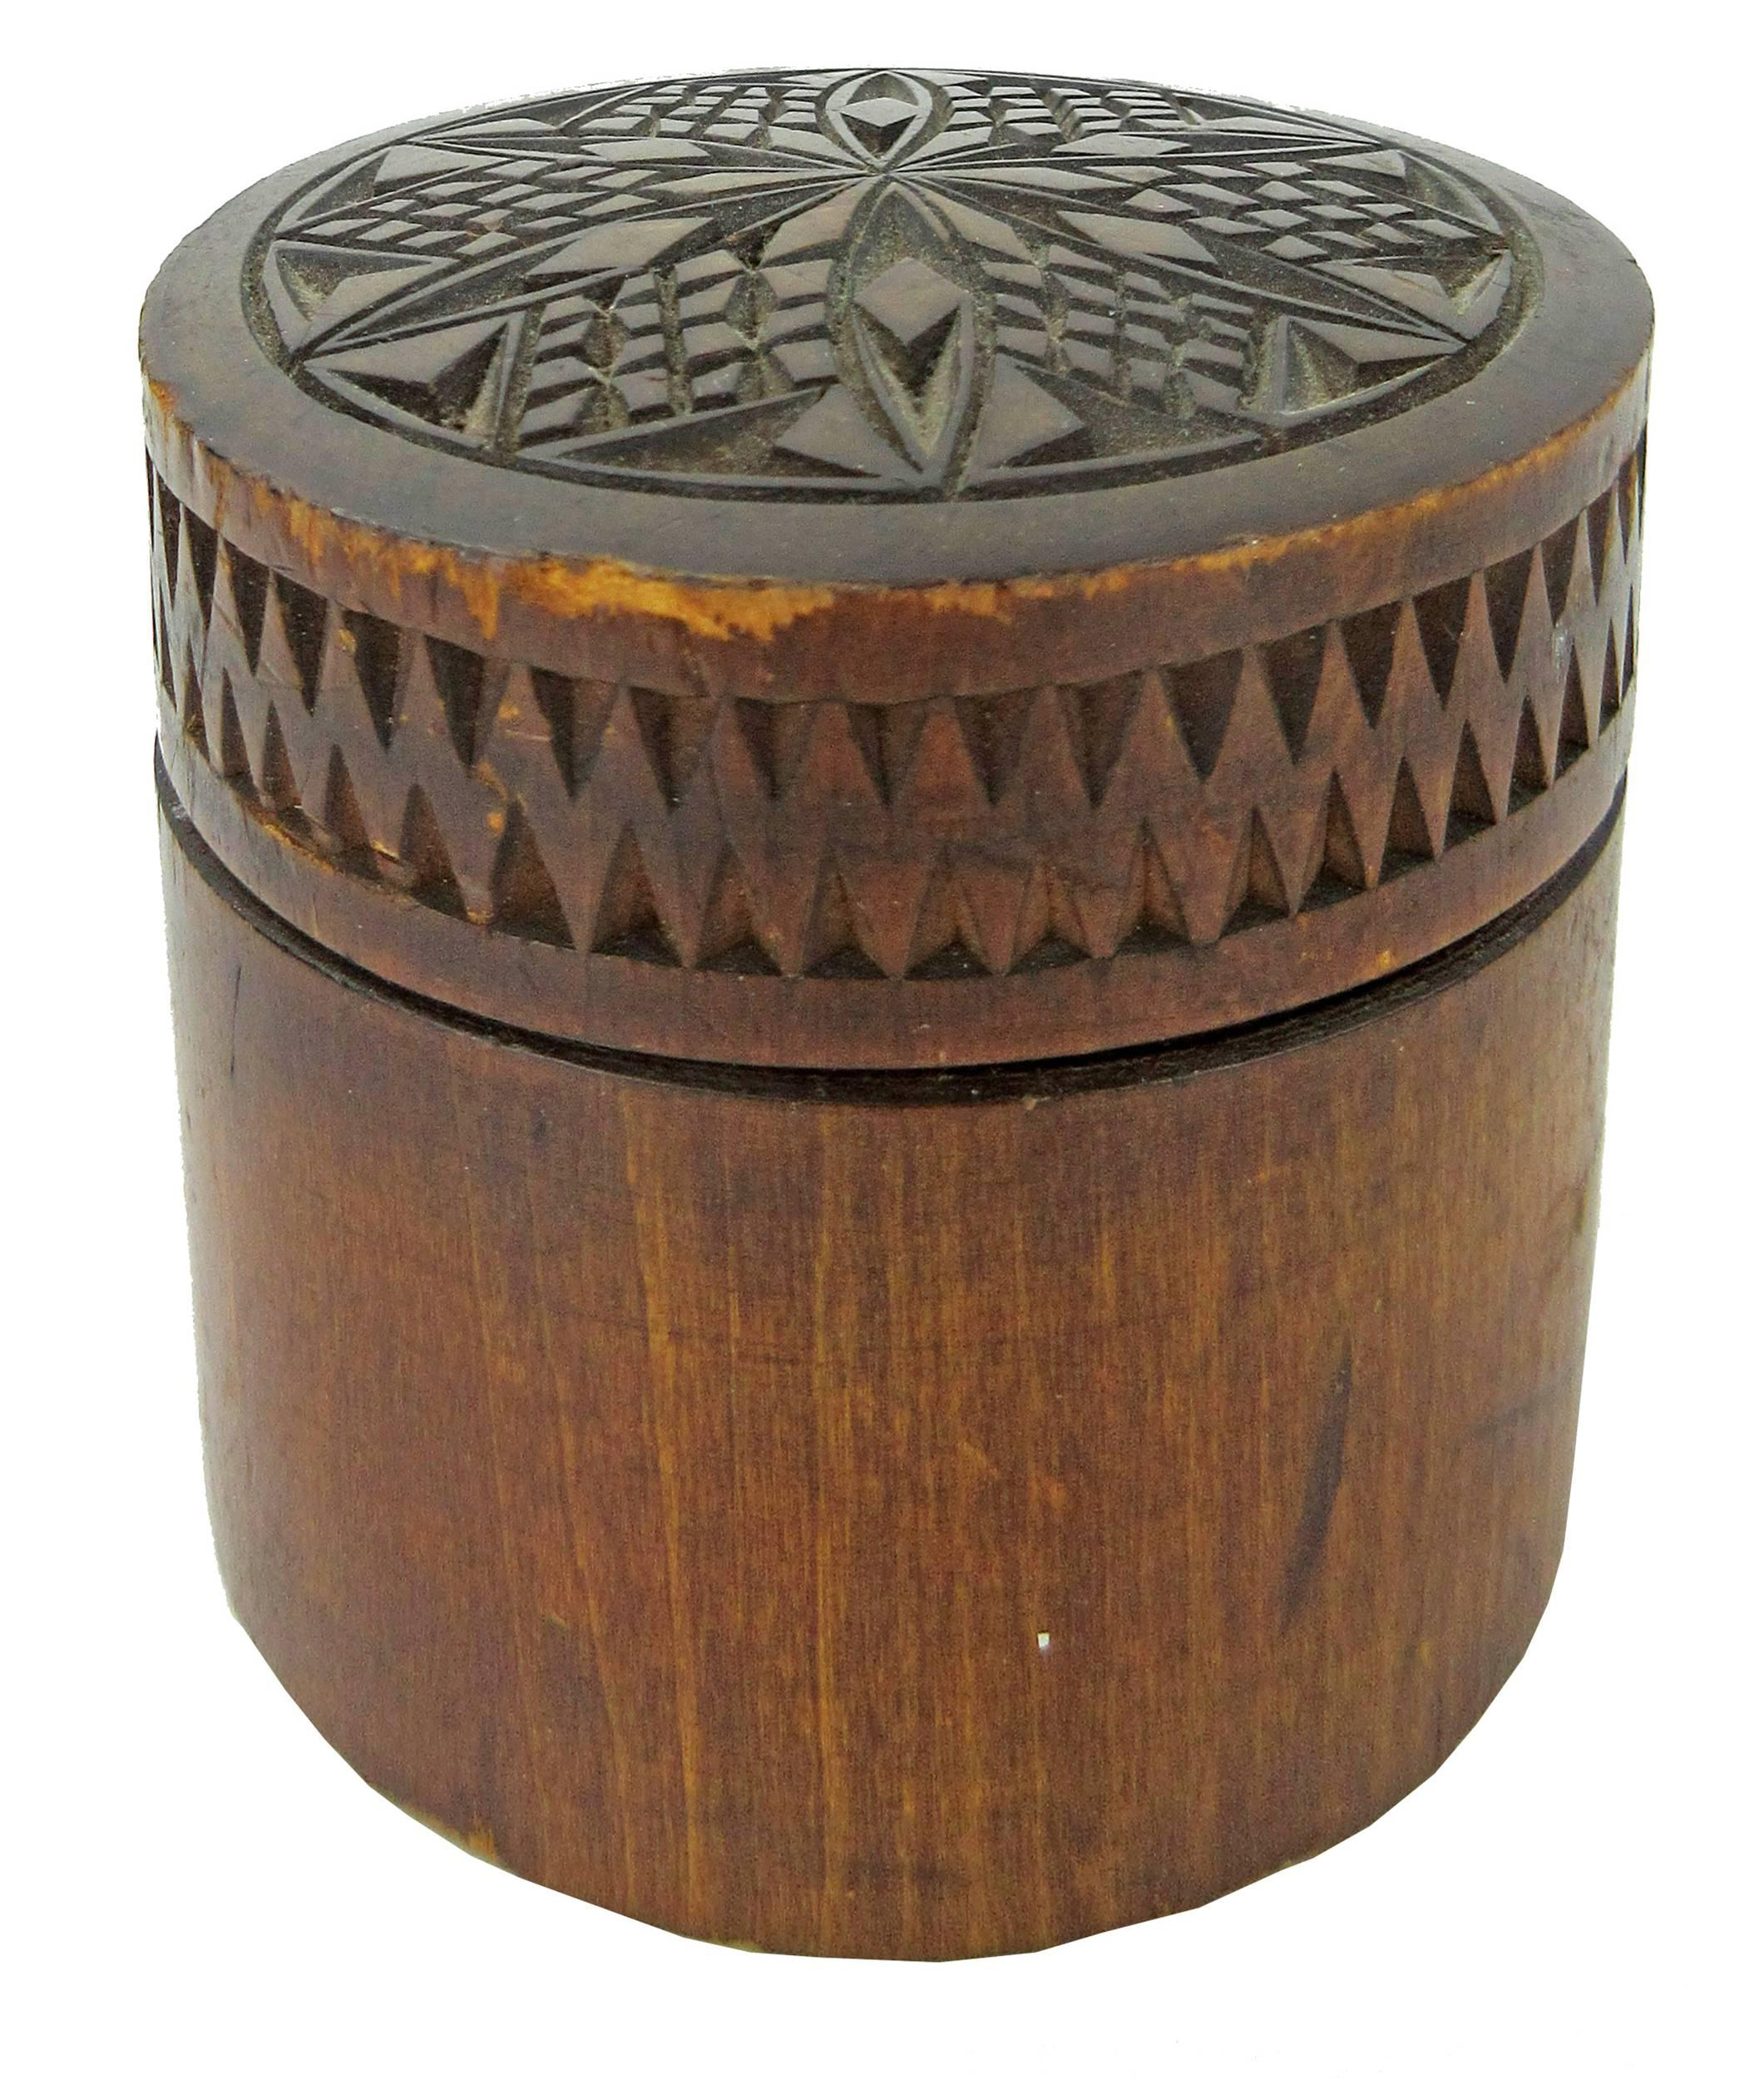 Jack Kerouac's Personally Owned Russian Carved Mahogany Covered Jar, from His Estate